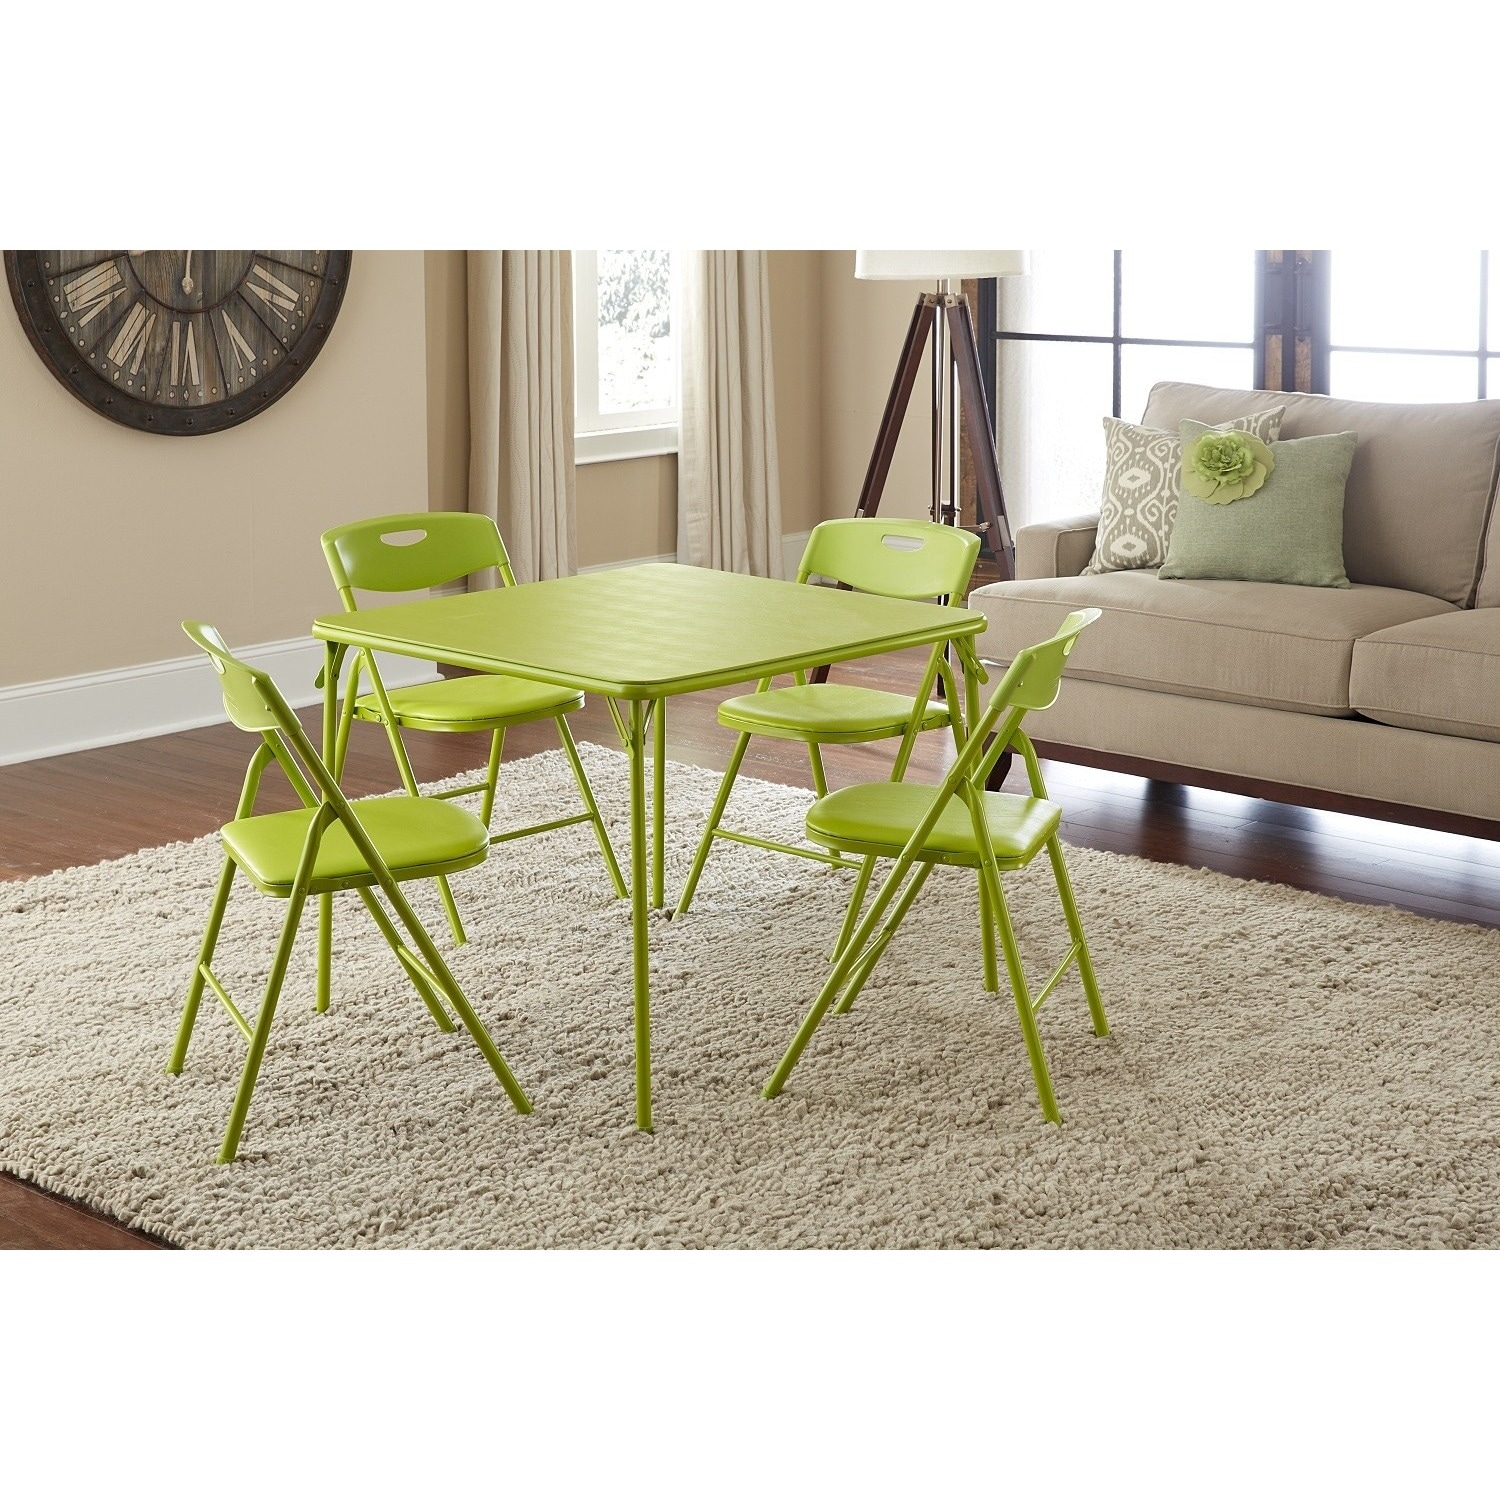 Shop The Curated Nomad Hillard 5-piece Folding Table and Chairs Set ...